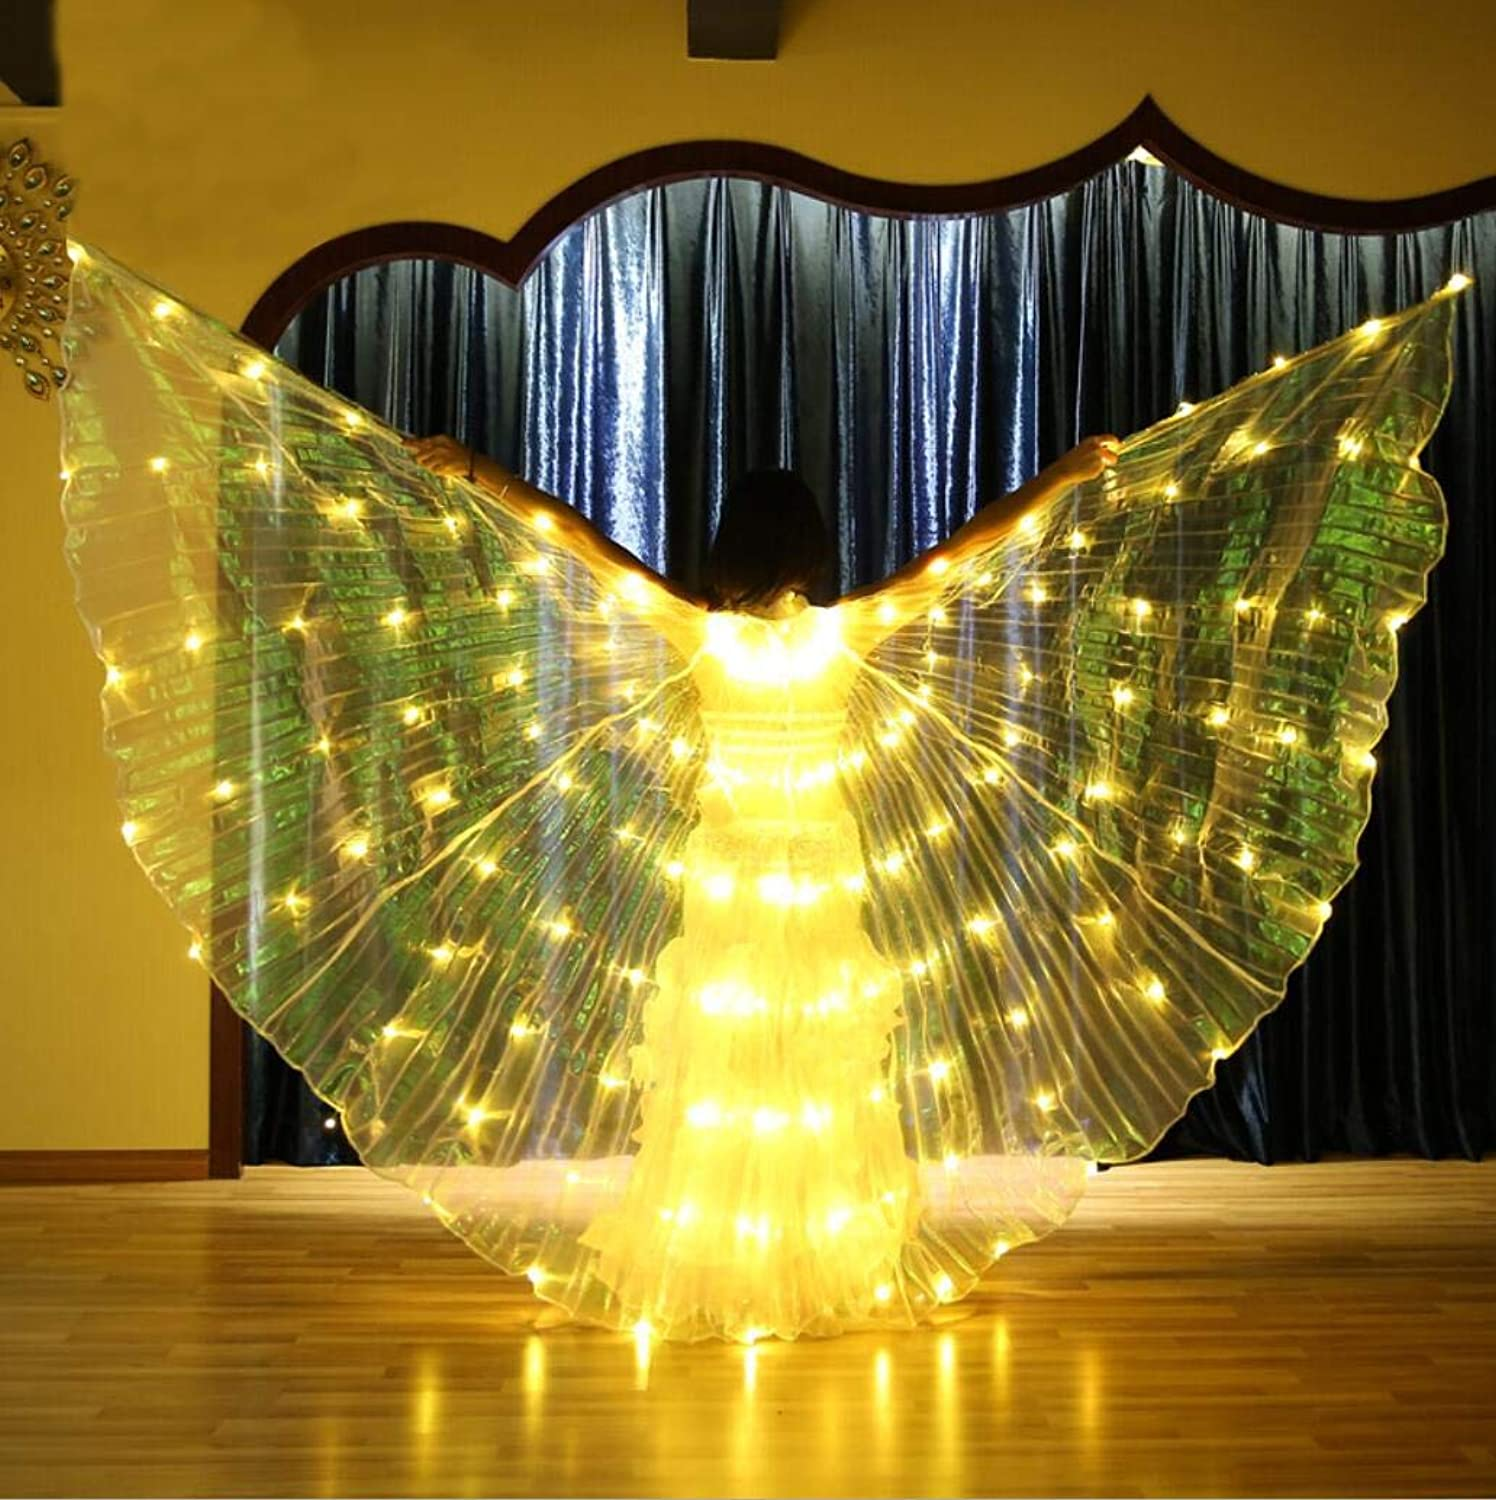 Dance Fairy Opening Belly Dance LED Isis Wings with Sticks RodsWings 280 LED Luminous Light Up Stage Performance Props Passed CE, FCC Certification4color Discoloration